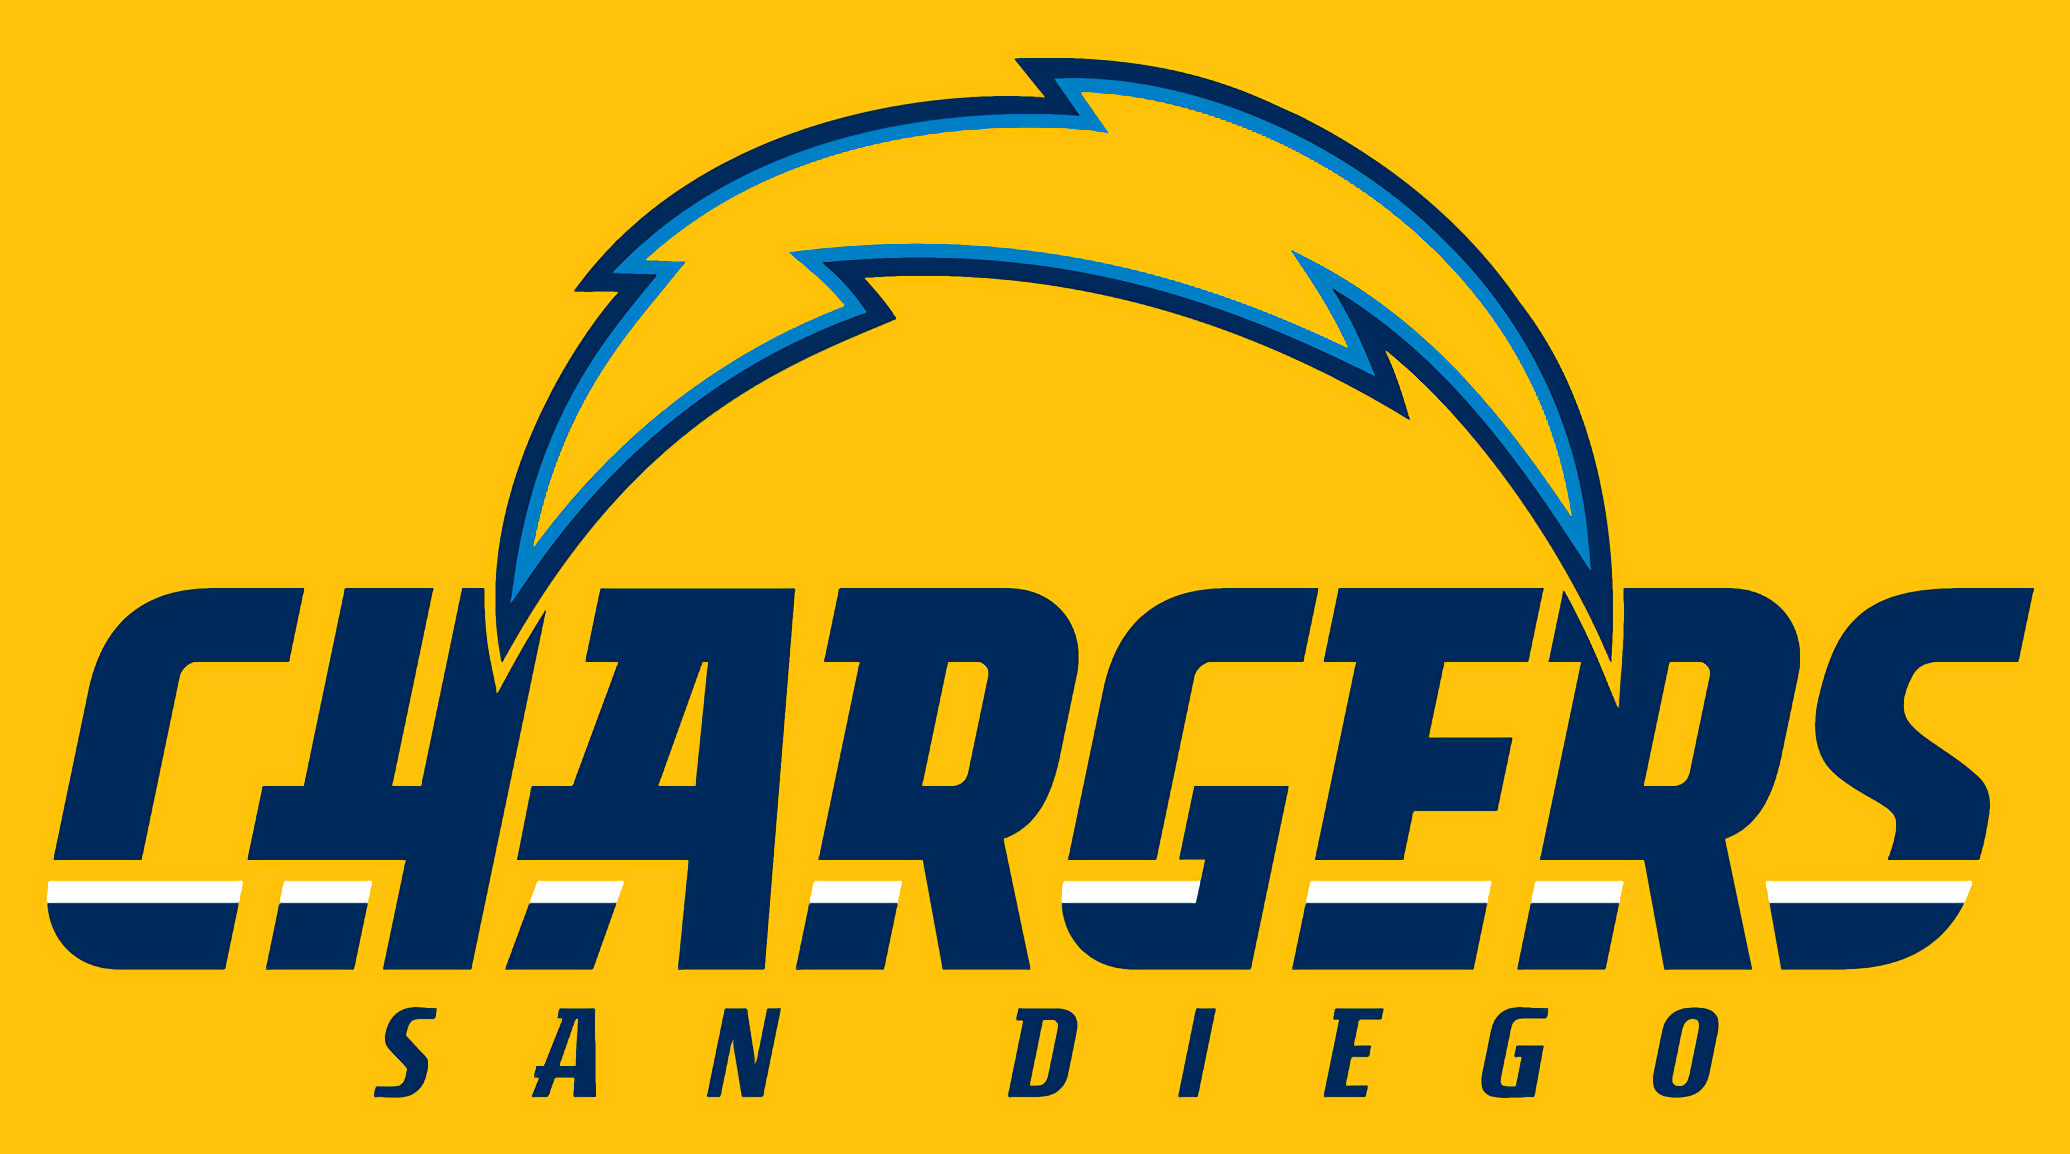 Los Angeles Chargers Wallpaper Posted By John Thompson